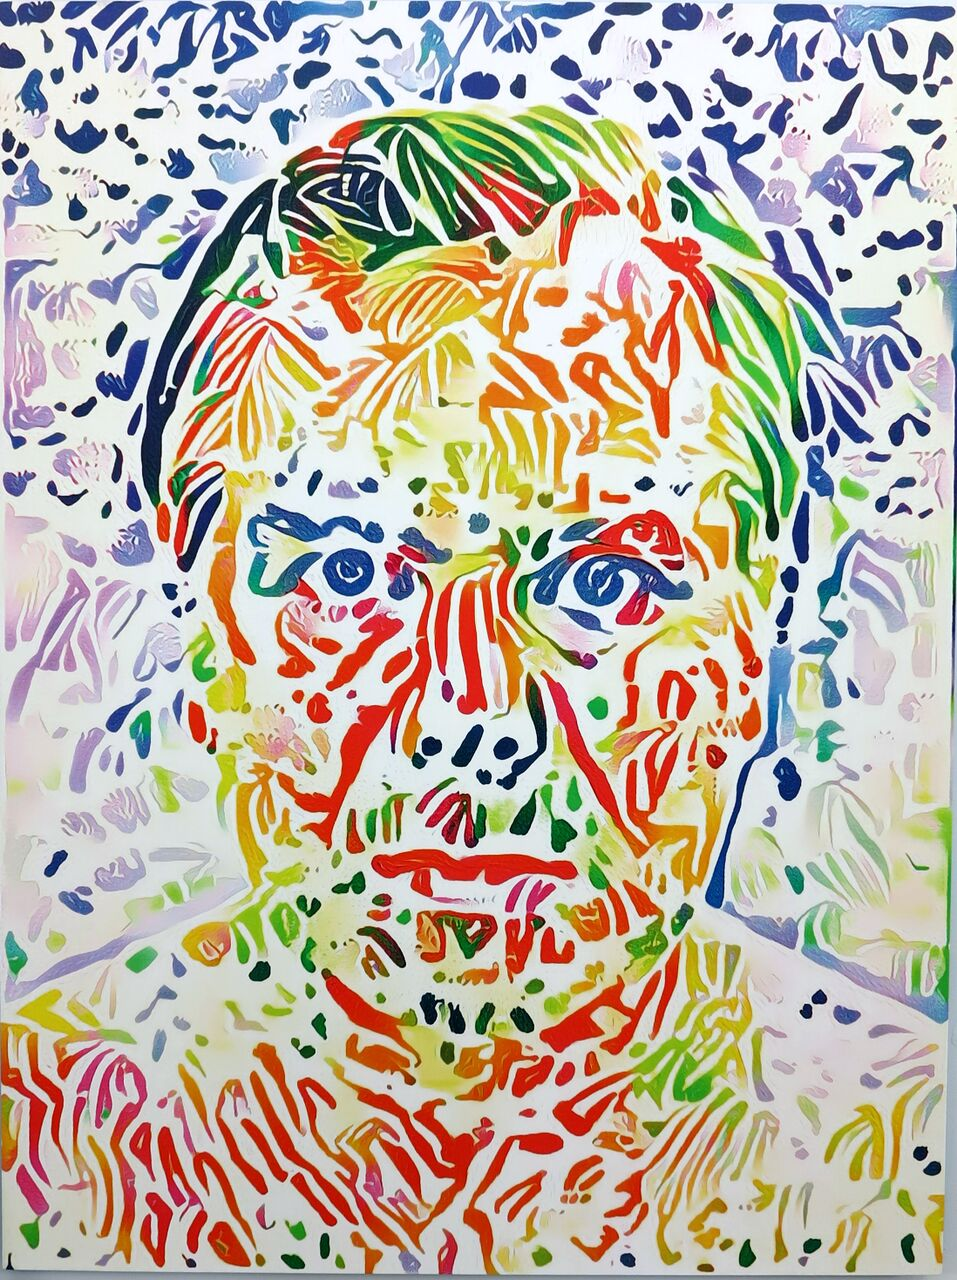 Artificial Intelligence Style Transfer Self-Portrait (Henri Matisse & My Face)